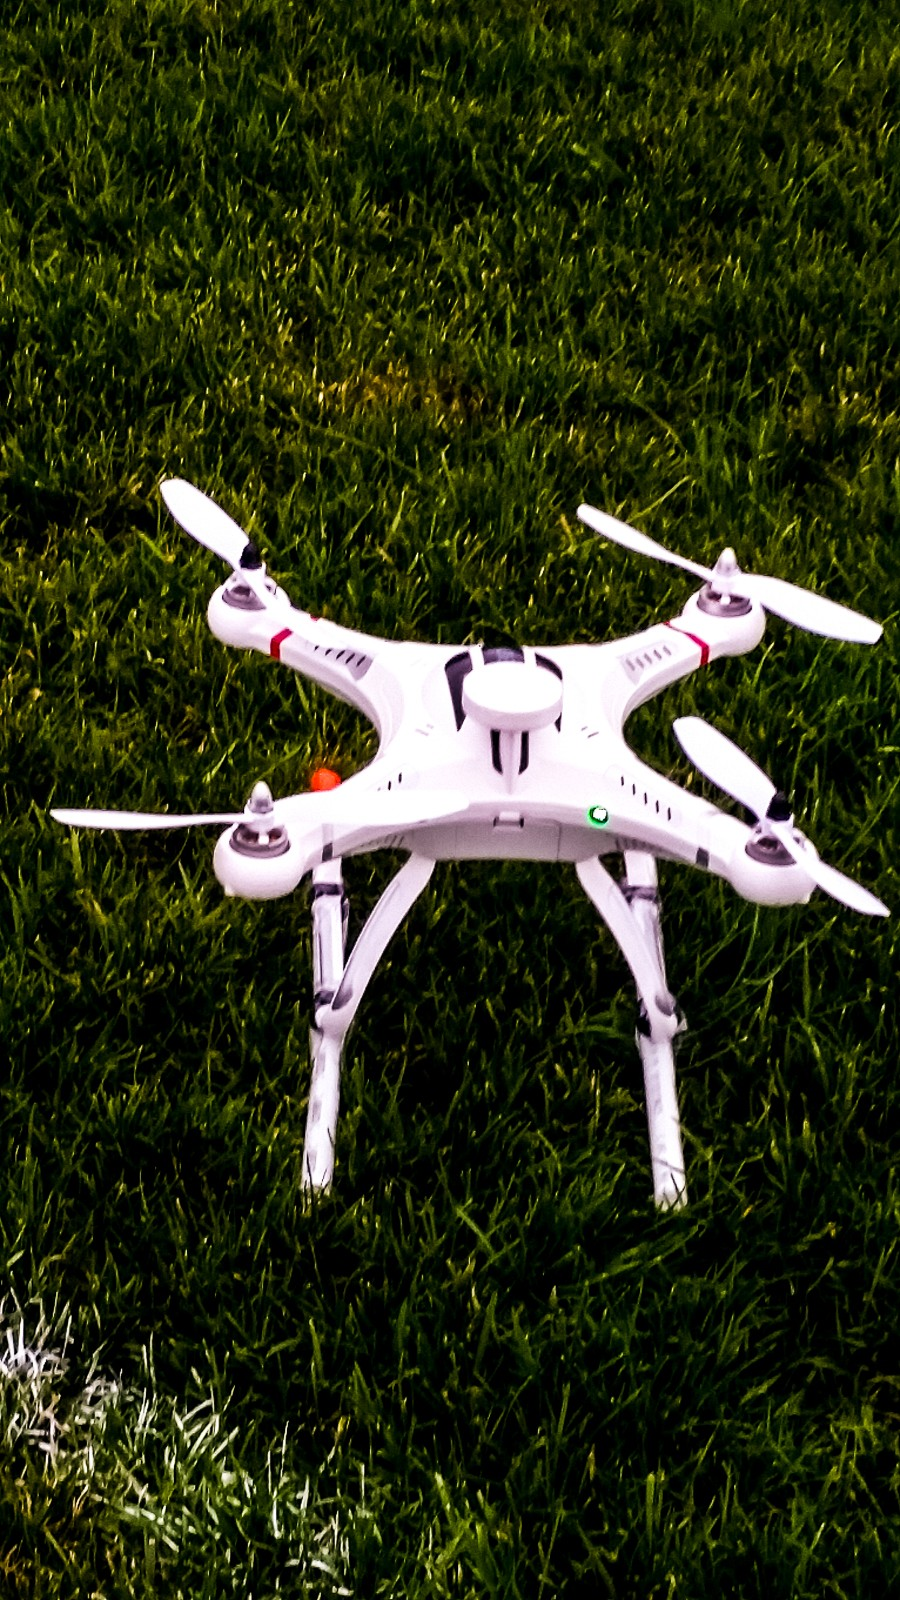 quadcopter-12